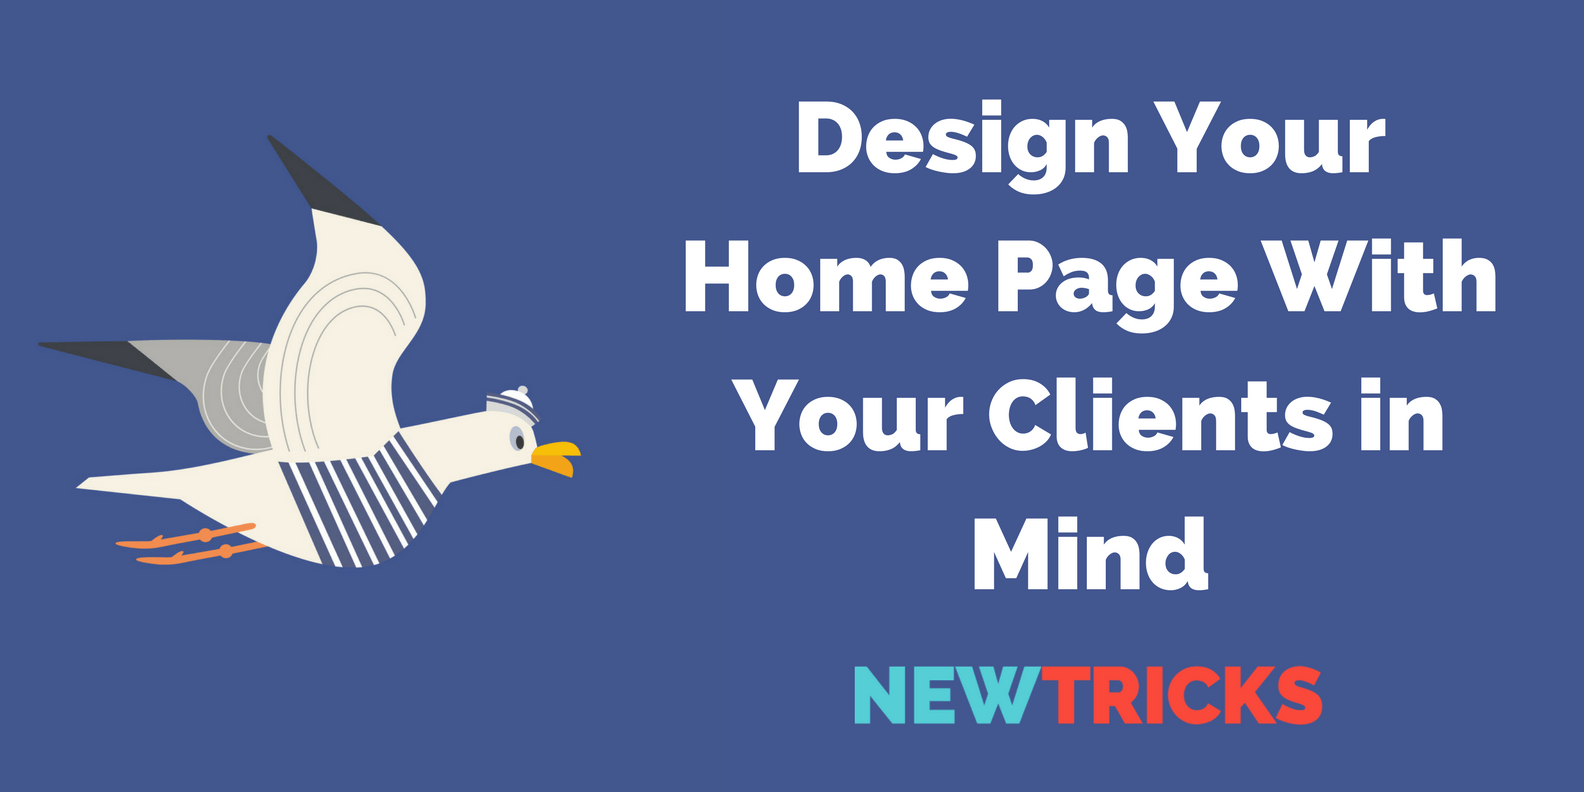 design your home page with your clients in mind